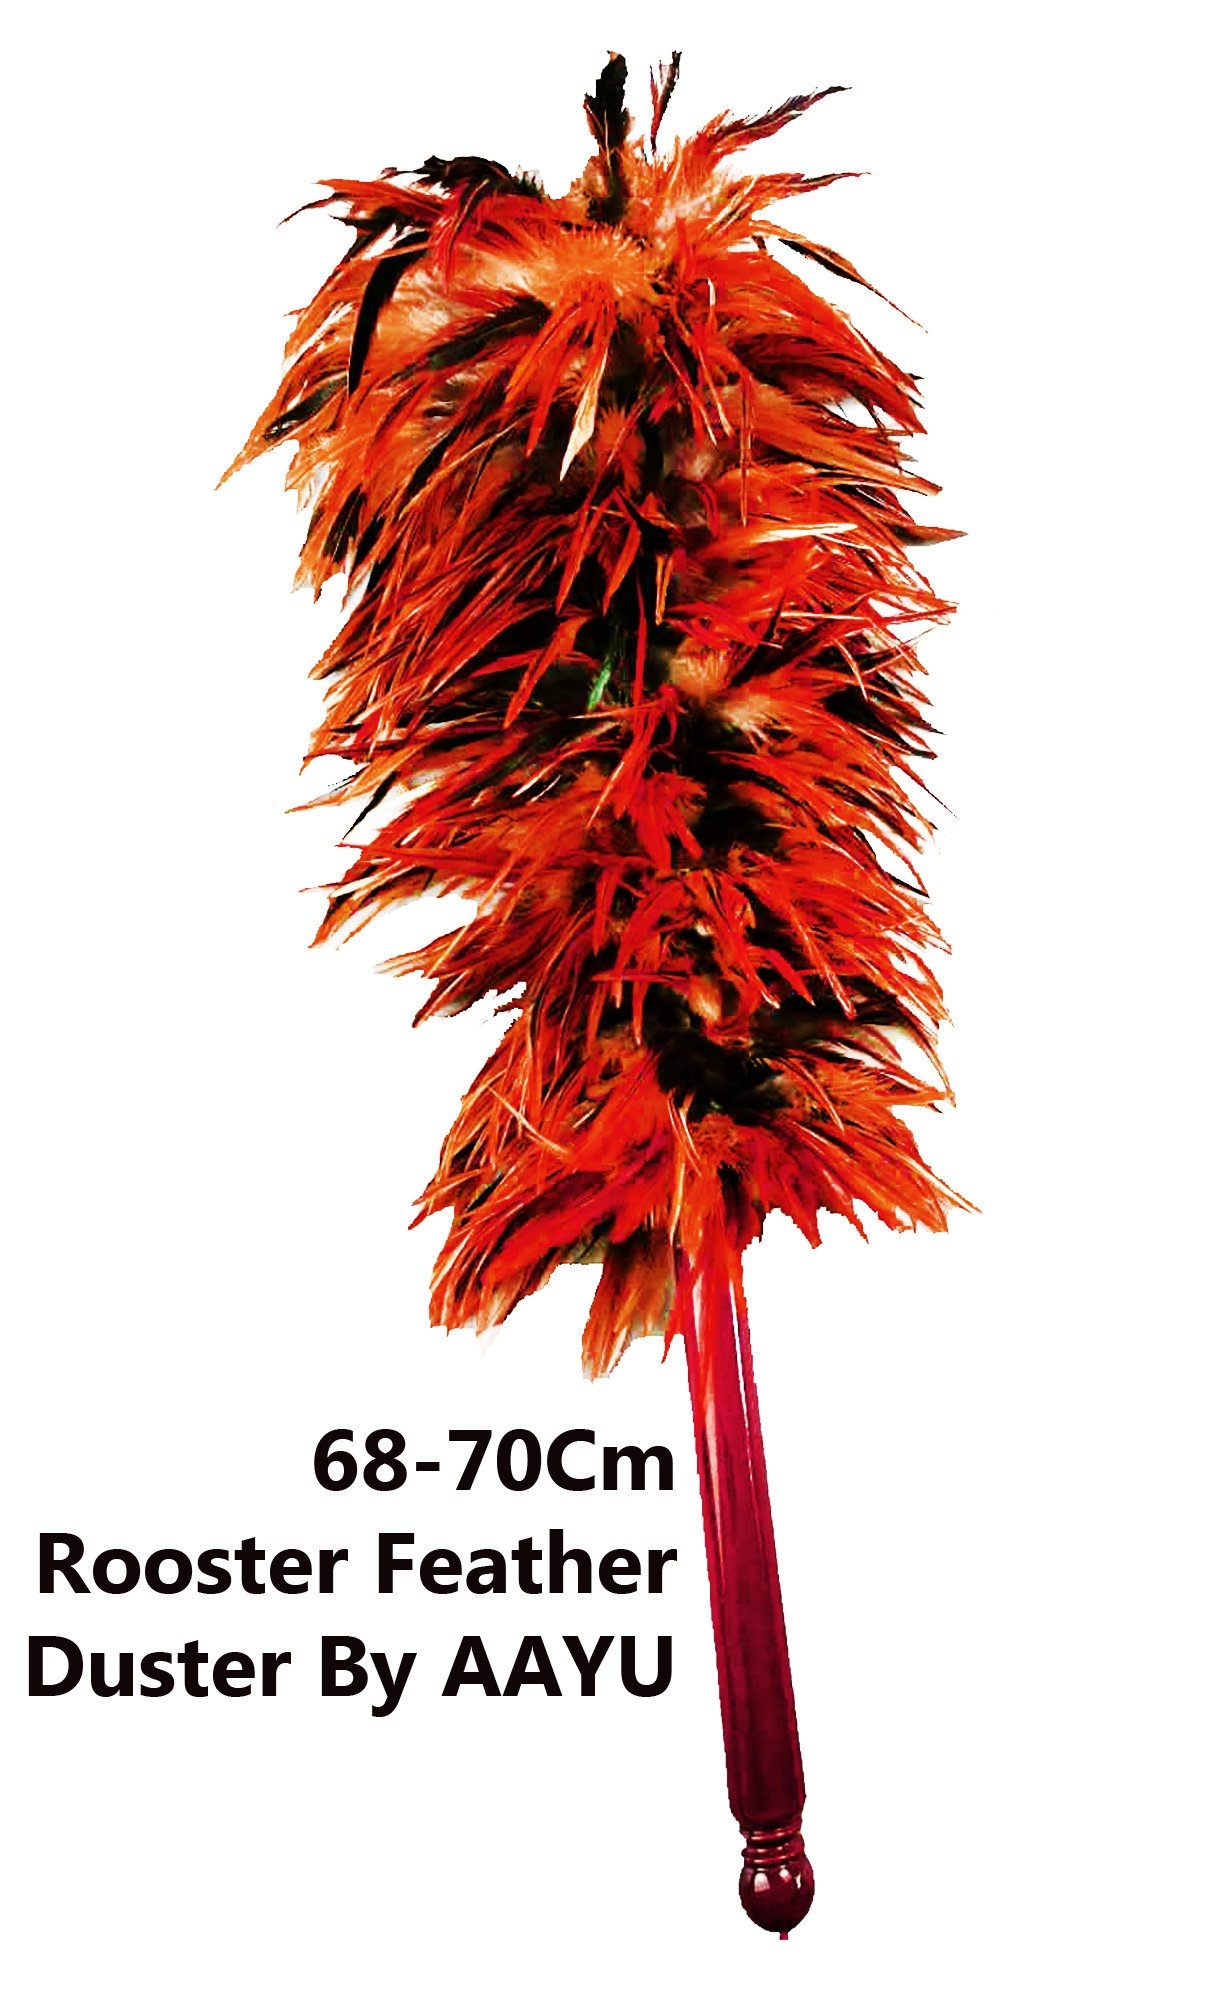 Rooster Chicken Feather Duster by AAYU   House Cleaning, Car Cleaning   Brush for Dust   Dusters to Clean Home   Feather Duster with Genuine Wooden Handle   Eco-Friendly Easy to Clean Dust   68 cm